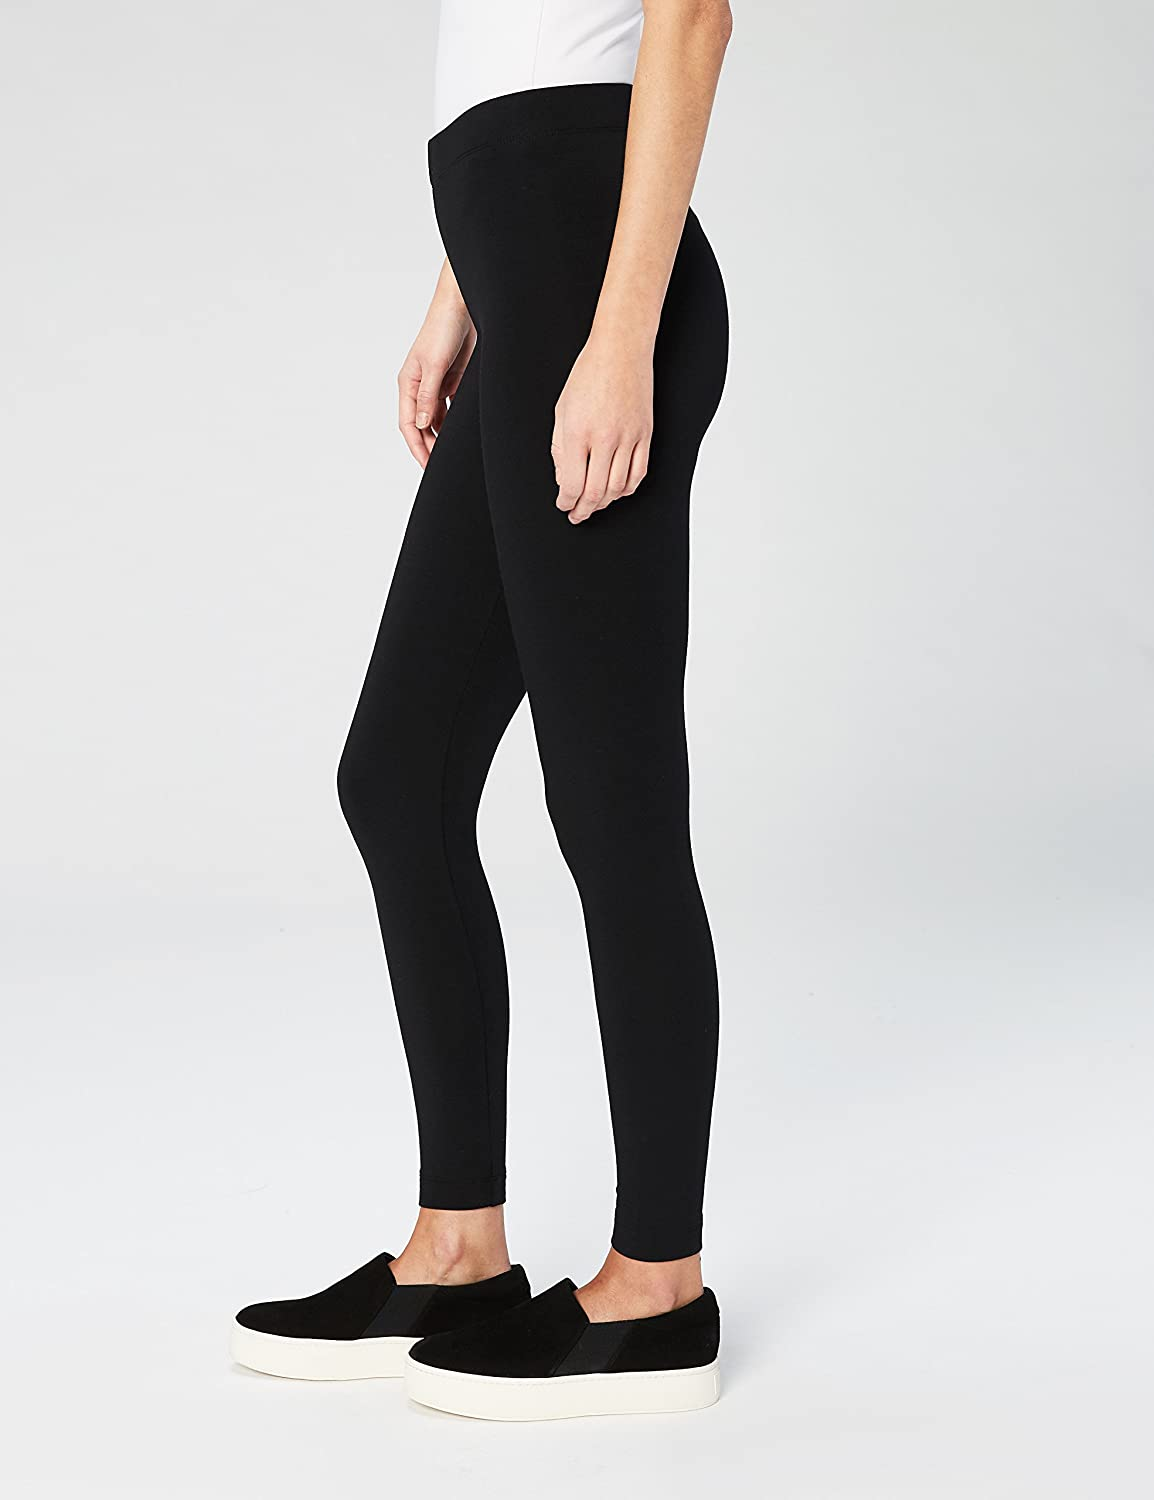 1c0c8650f12bb Amazon.com: Daily Ritual Women's Soft French Terry Legging: Clothing